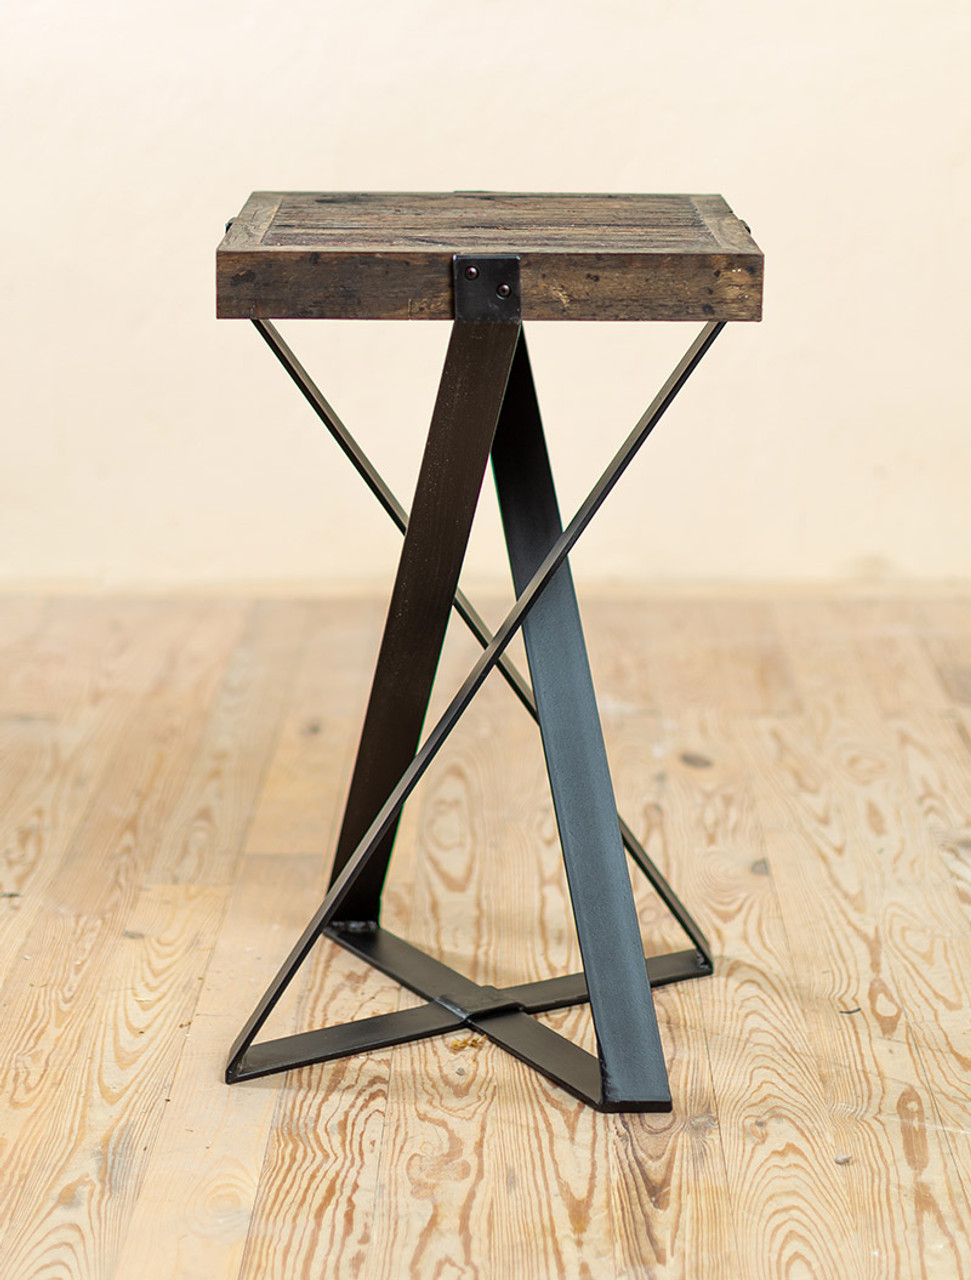 - The 201 Hand-Forged Accent Table - Urban Forge